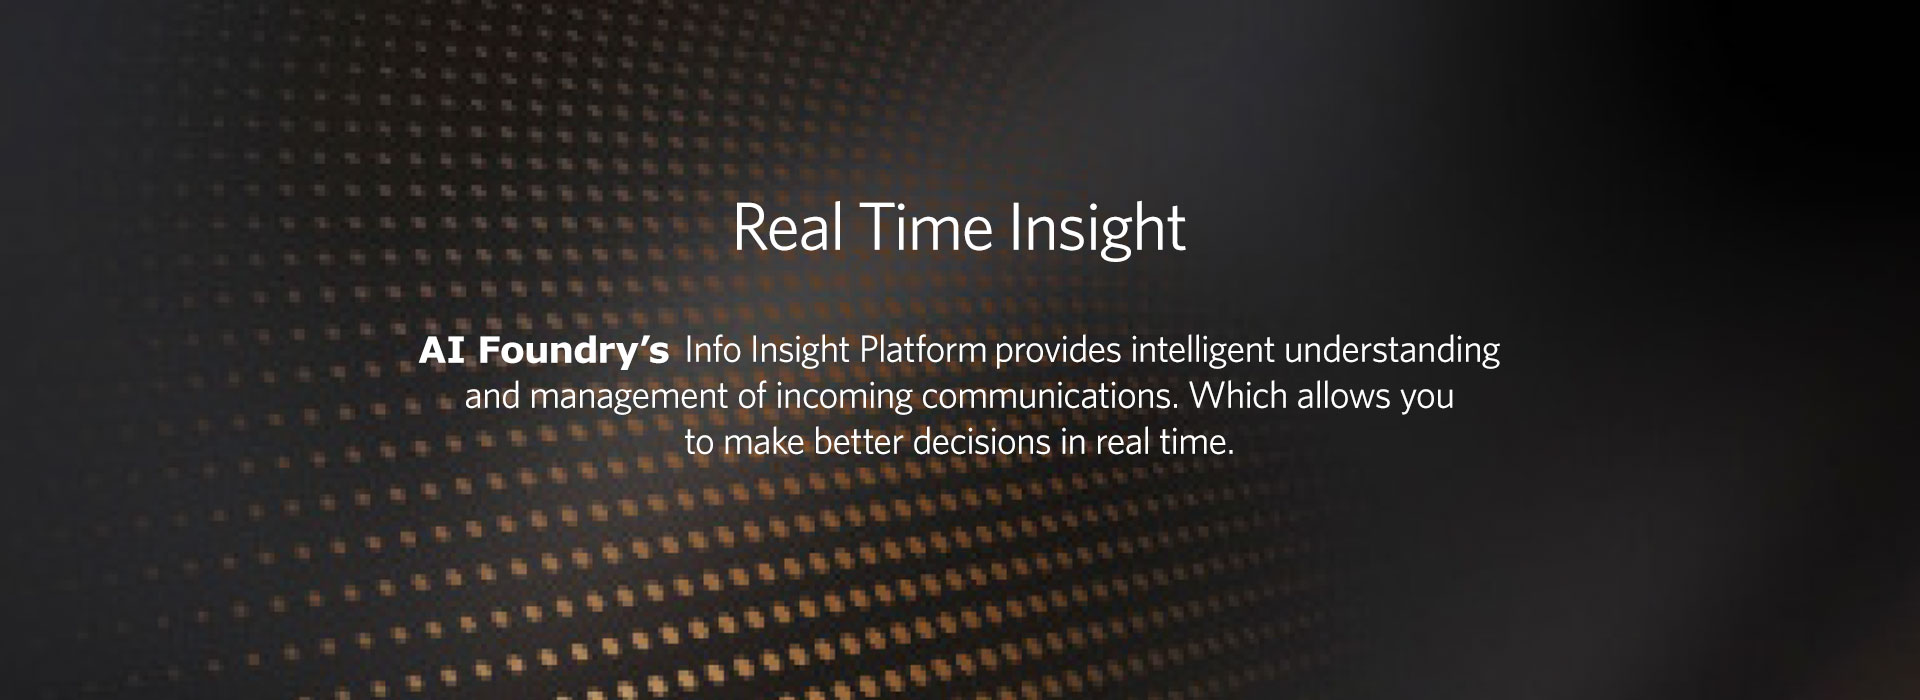 AI Foundry Info Insight